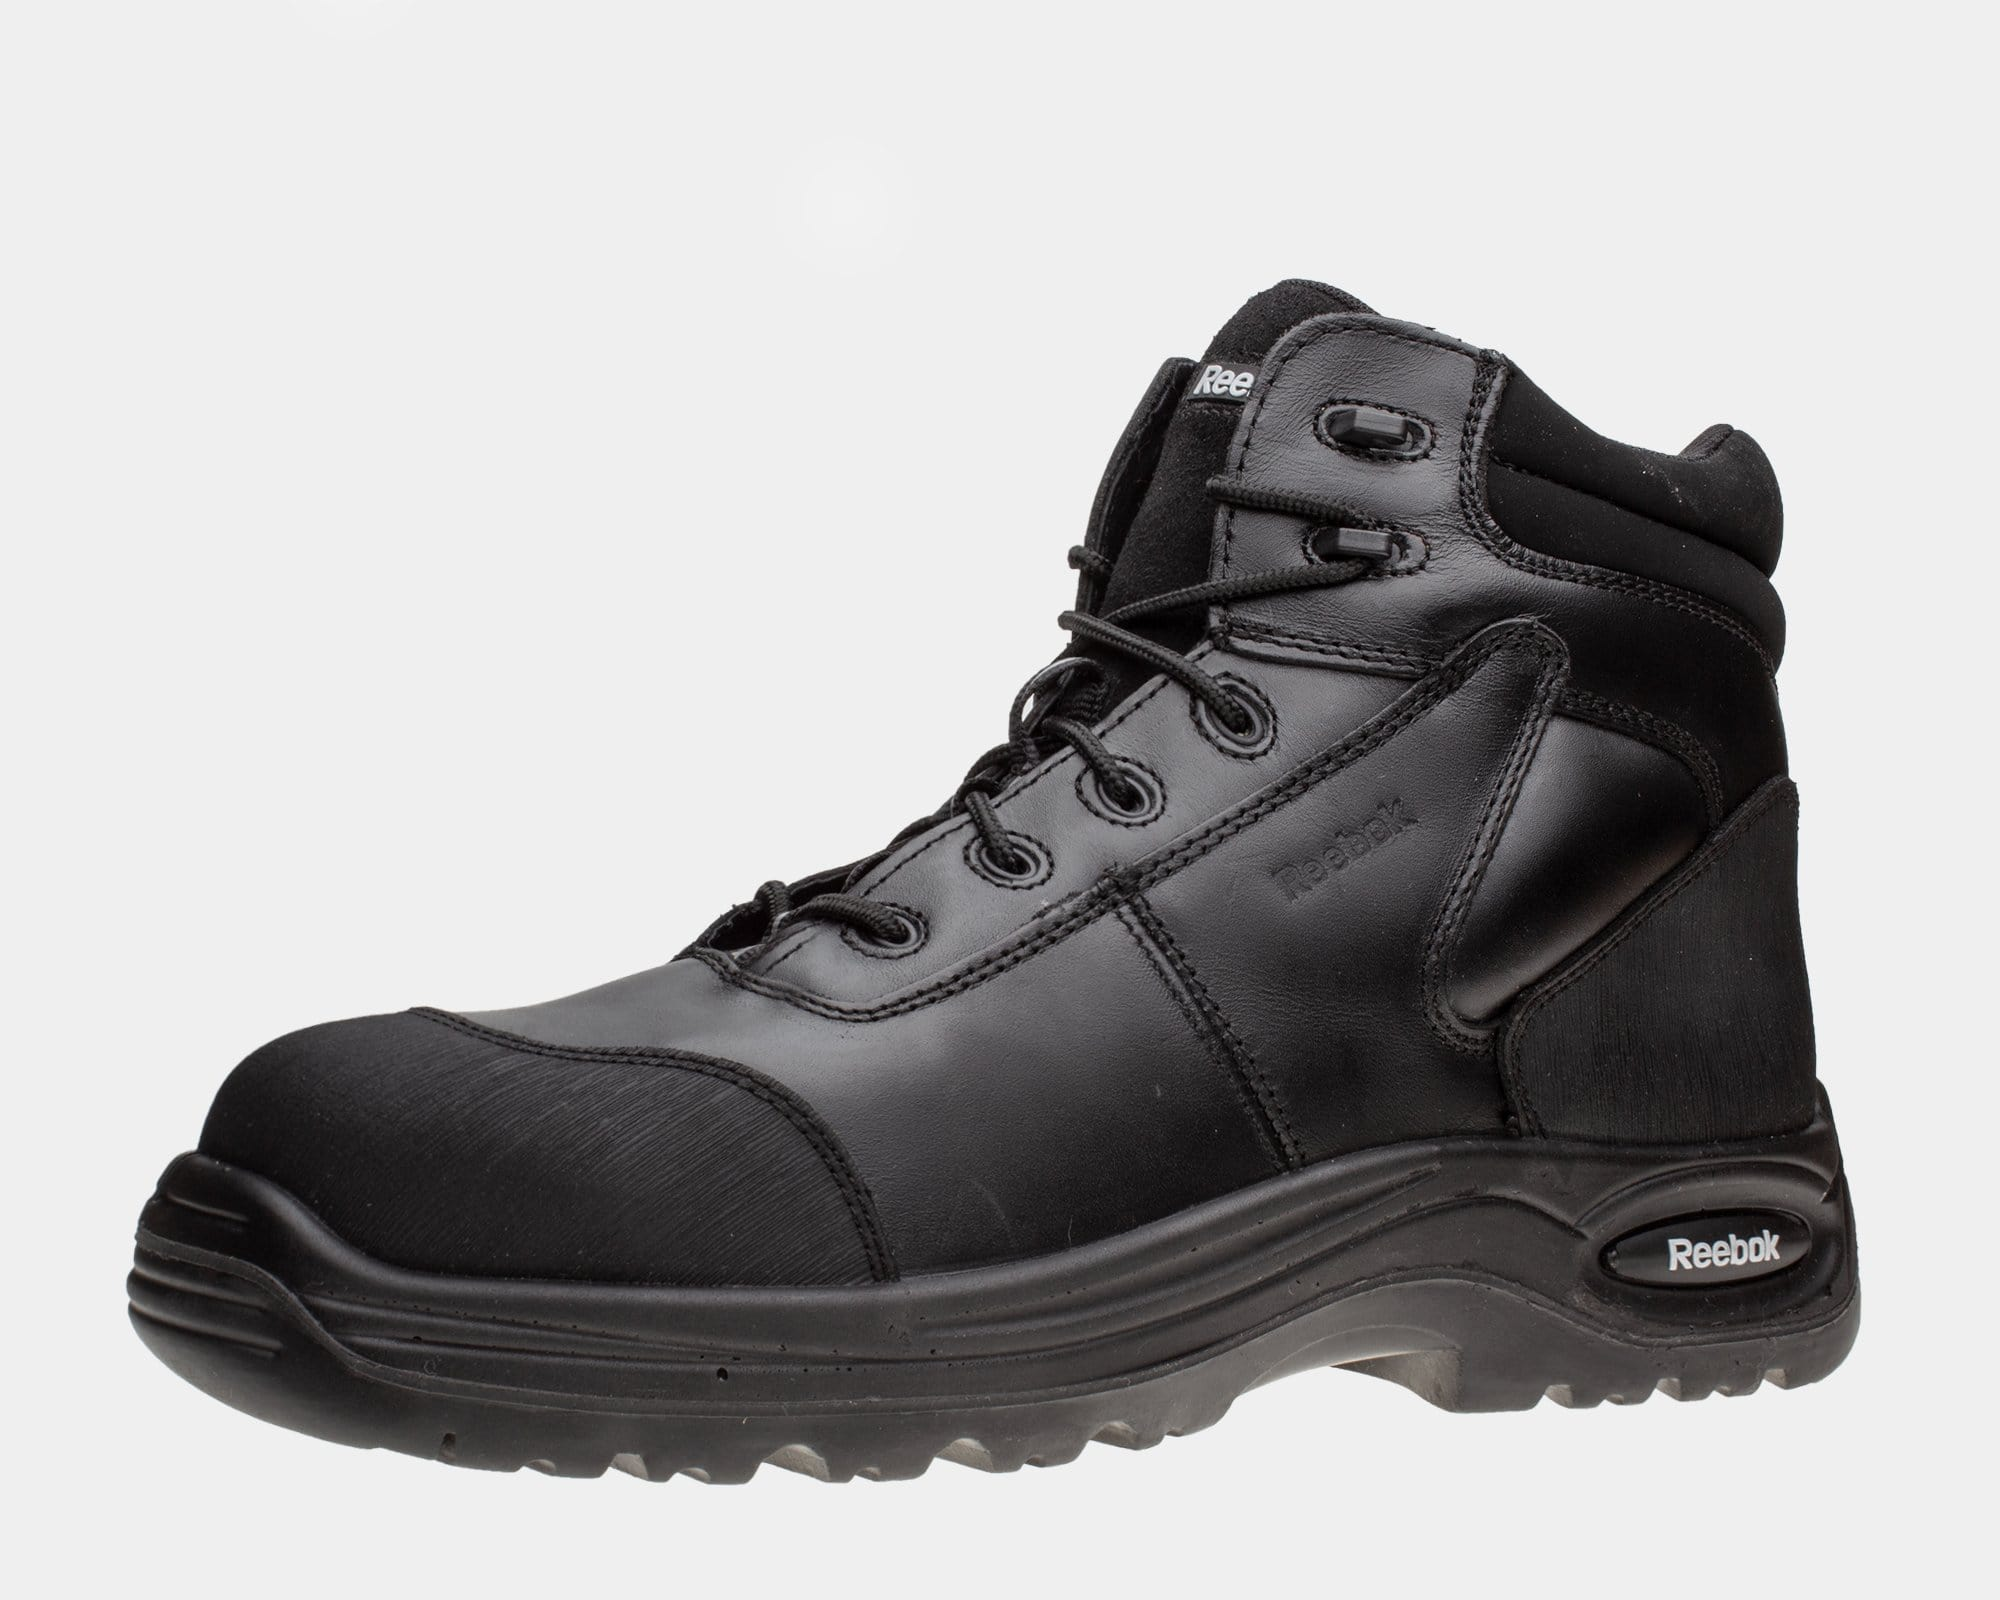 0c2a077a262 Reebok Work 6 Inch Sport Comp Toe Work Boot - Mens Large Sizes